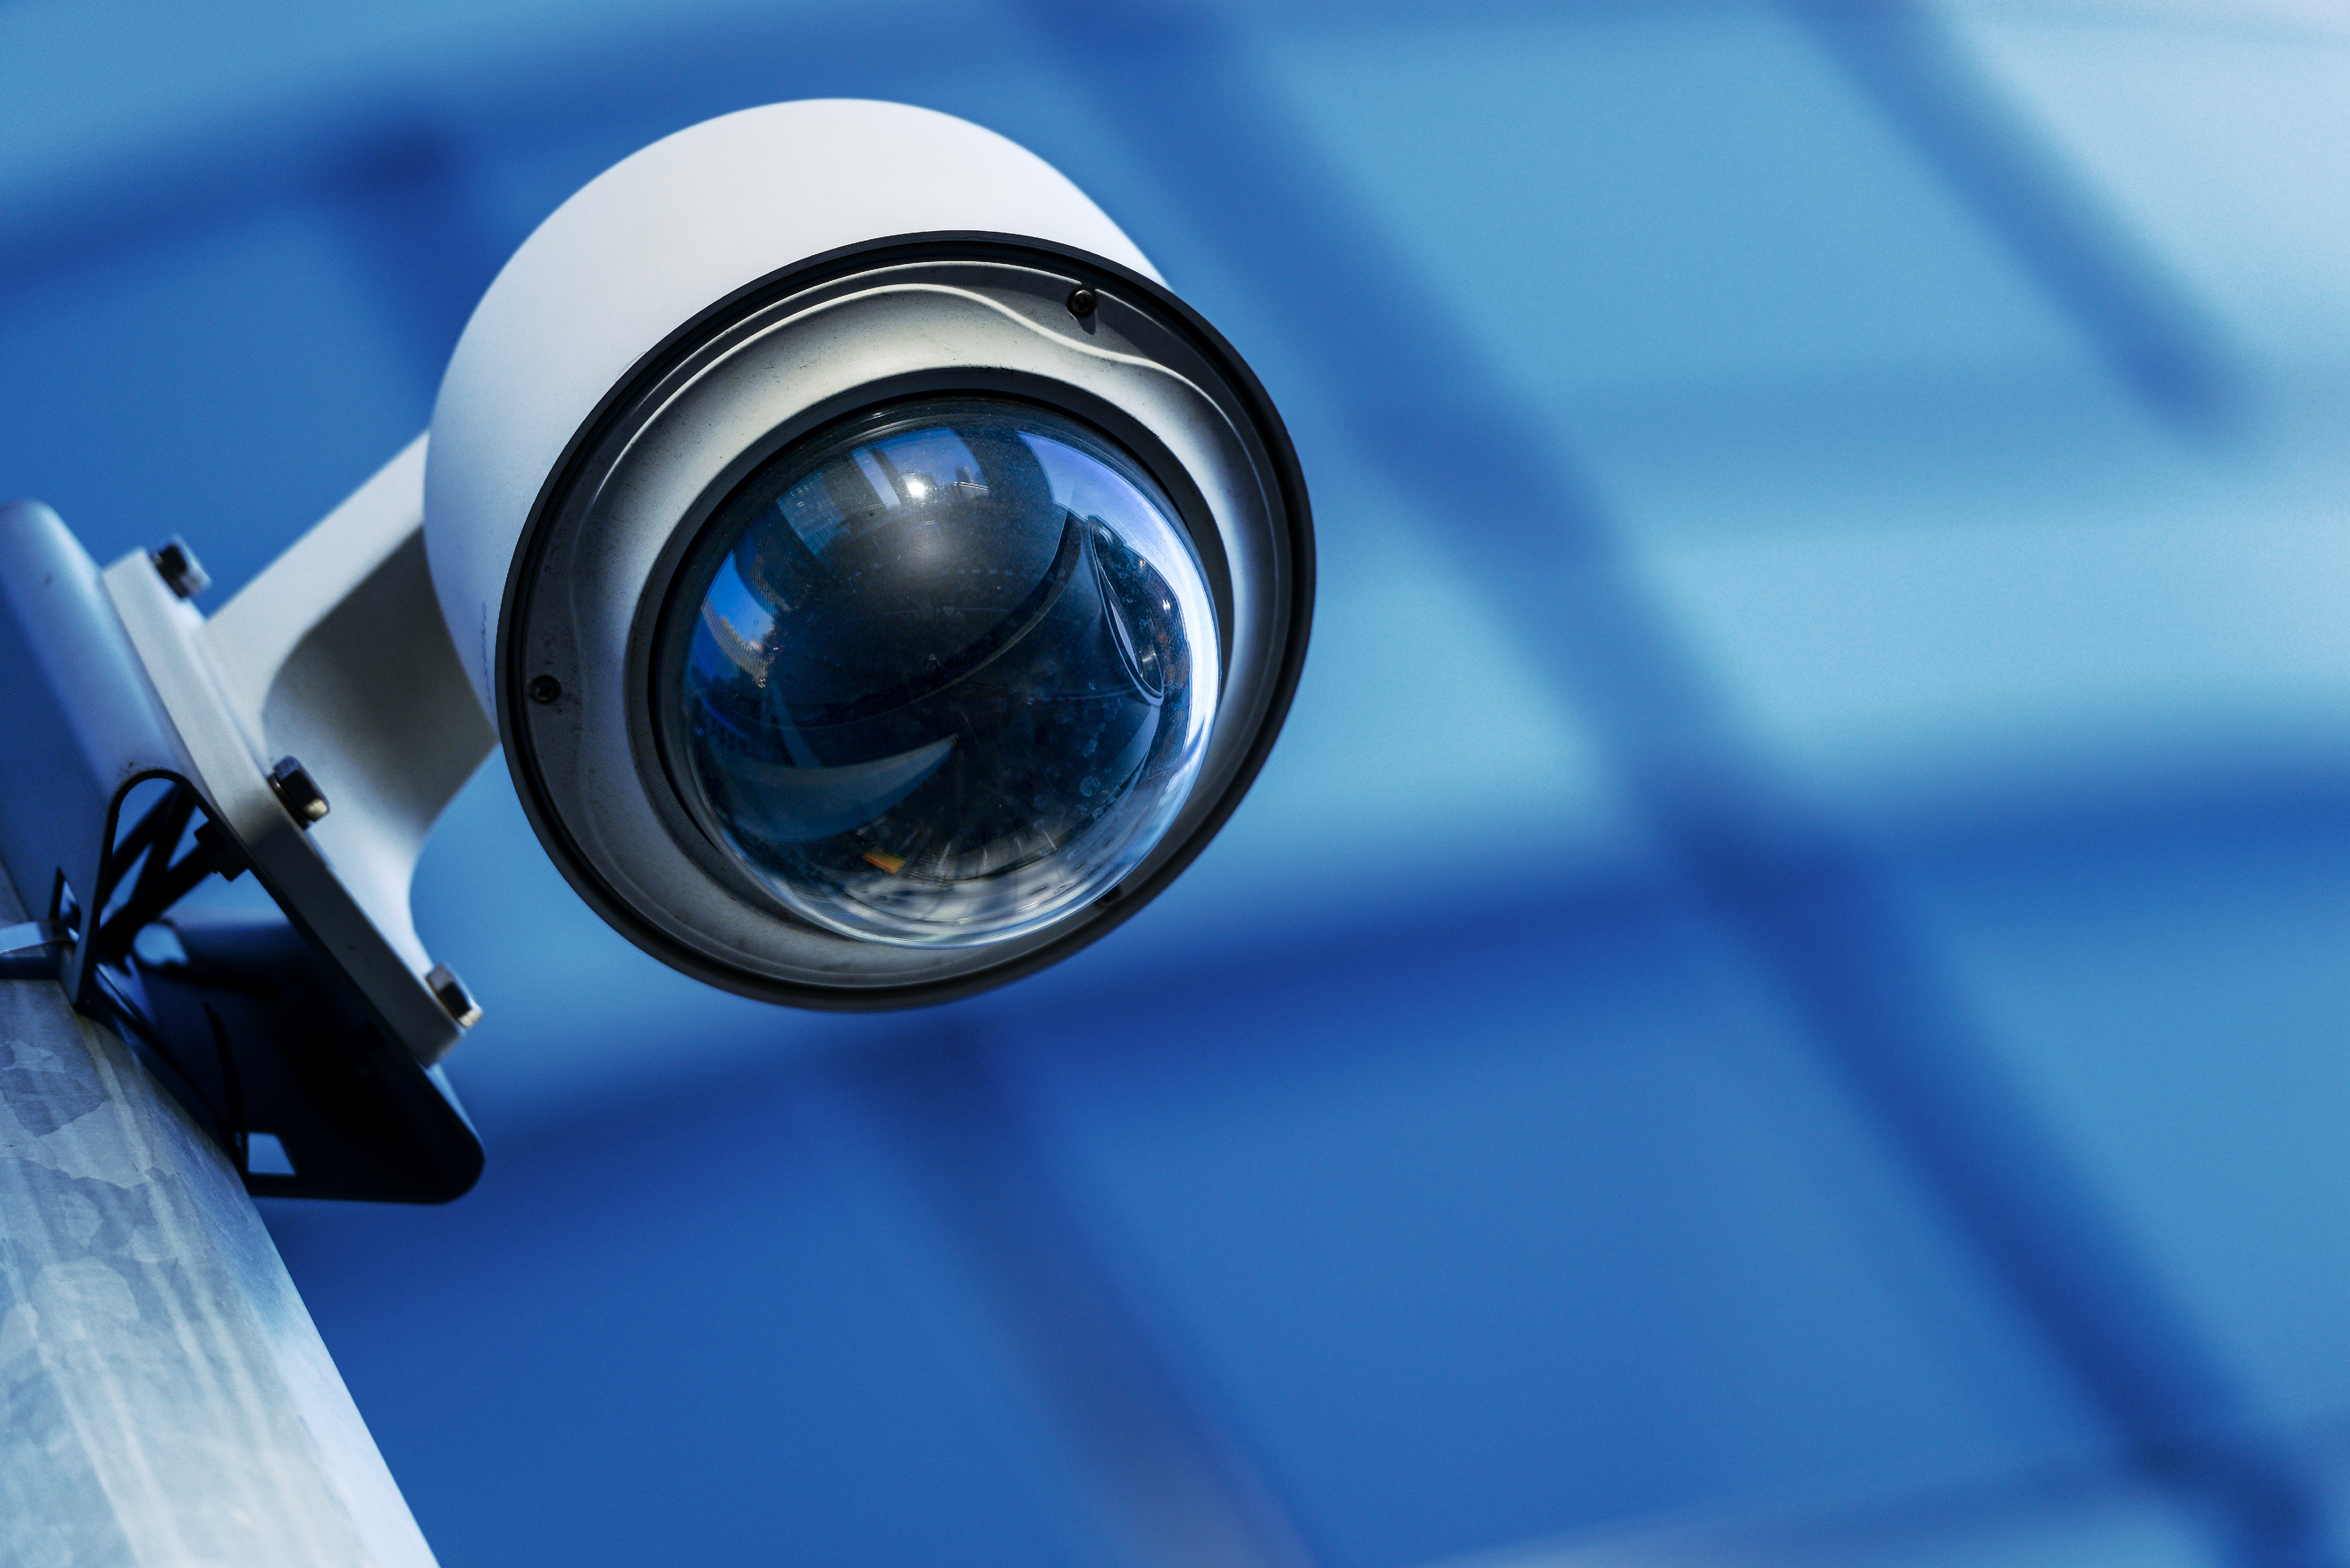 security systems for business or home new england dynamark